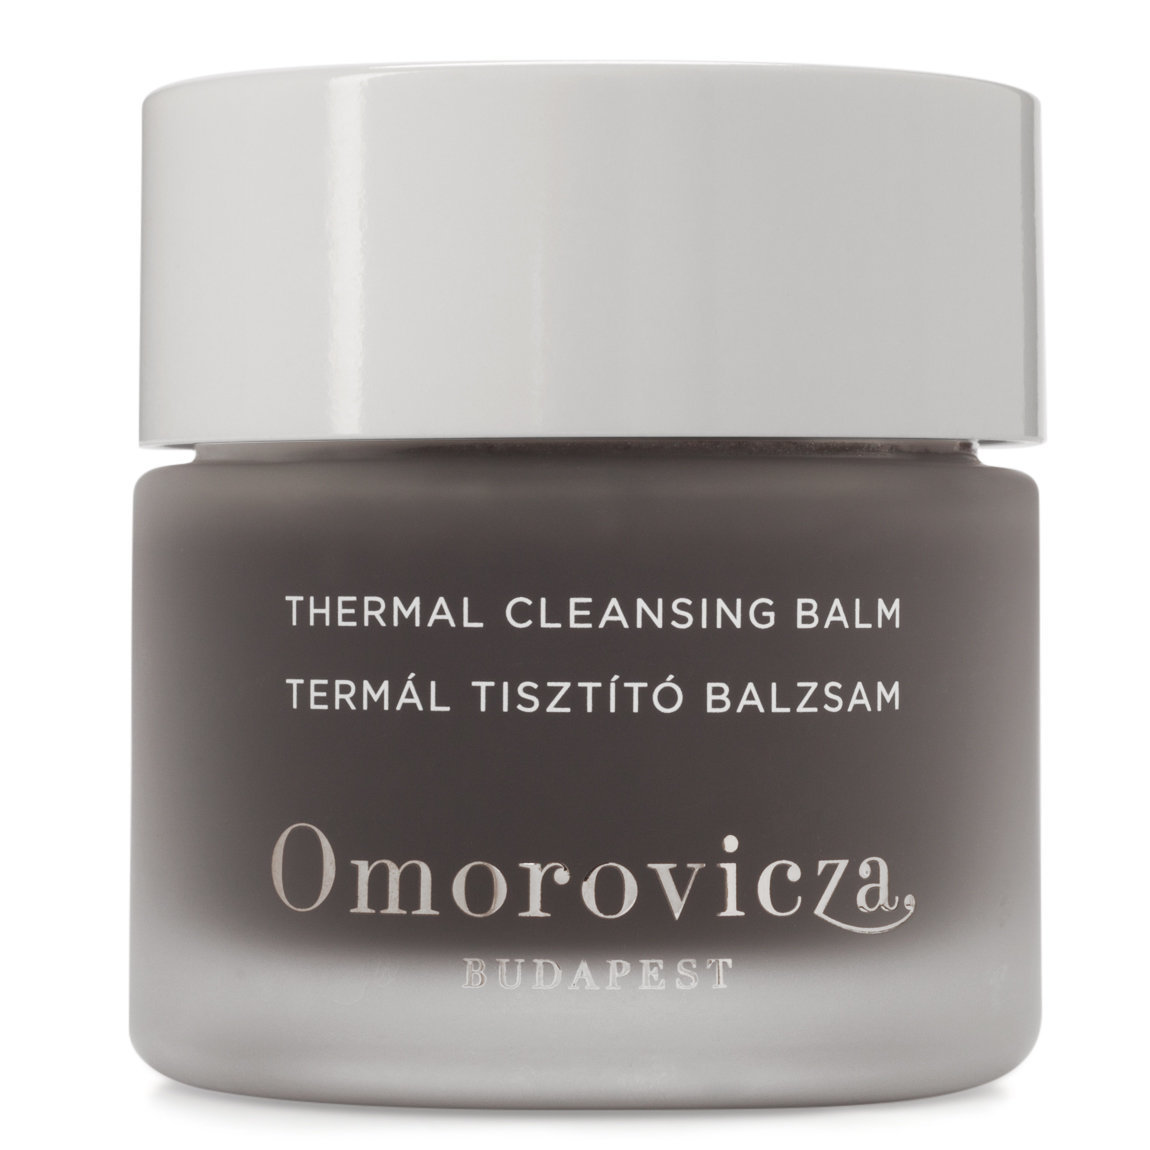 Omorovicza Thermal Cleansing Balm 50 ml alternative view 1.